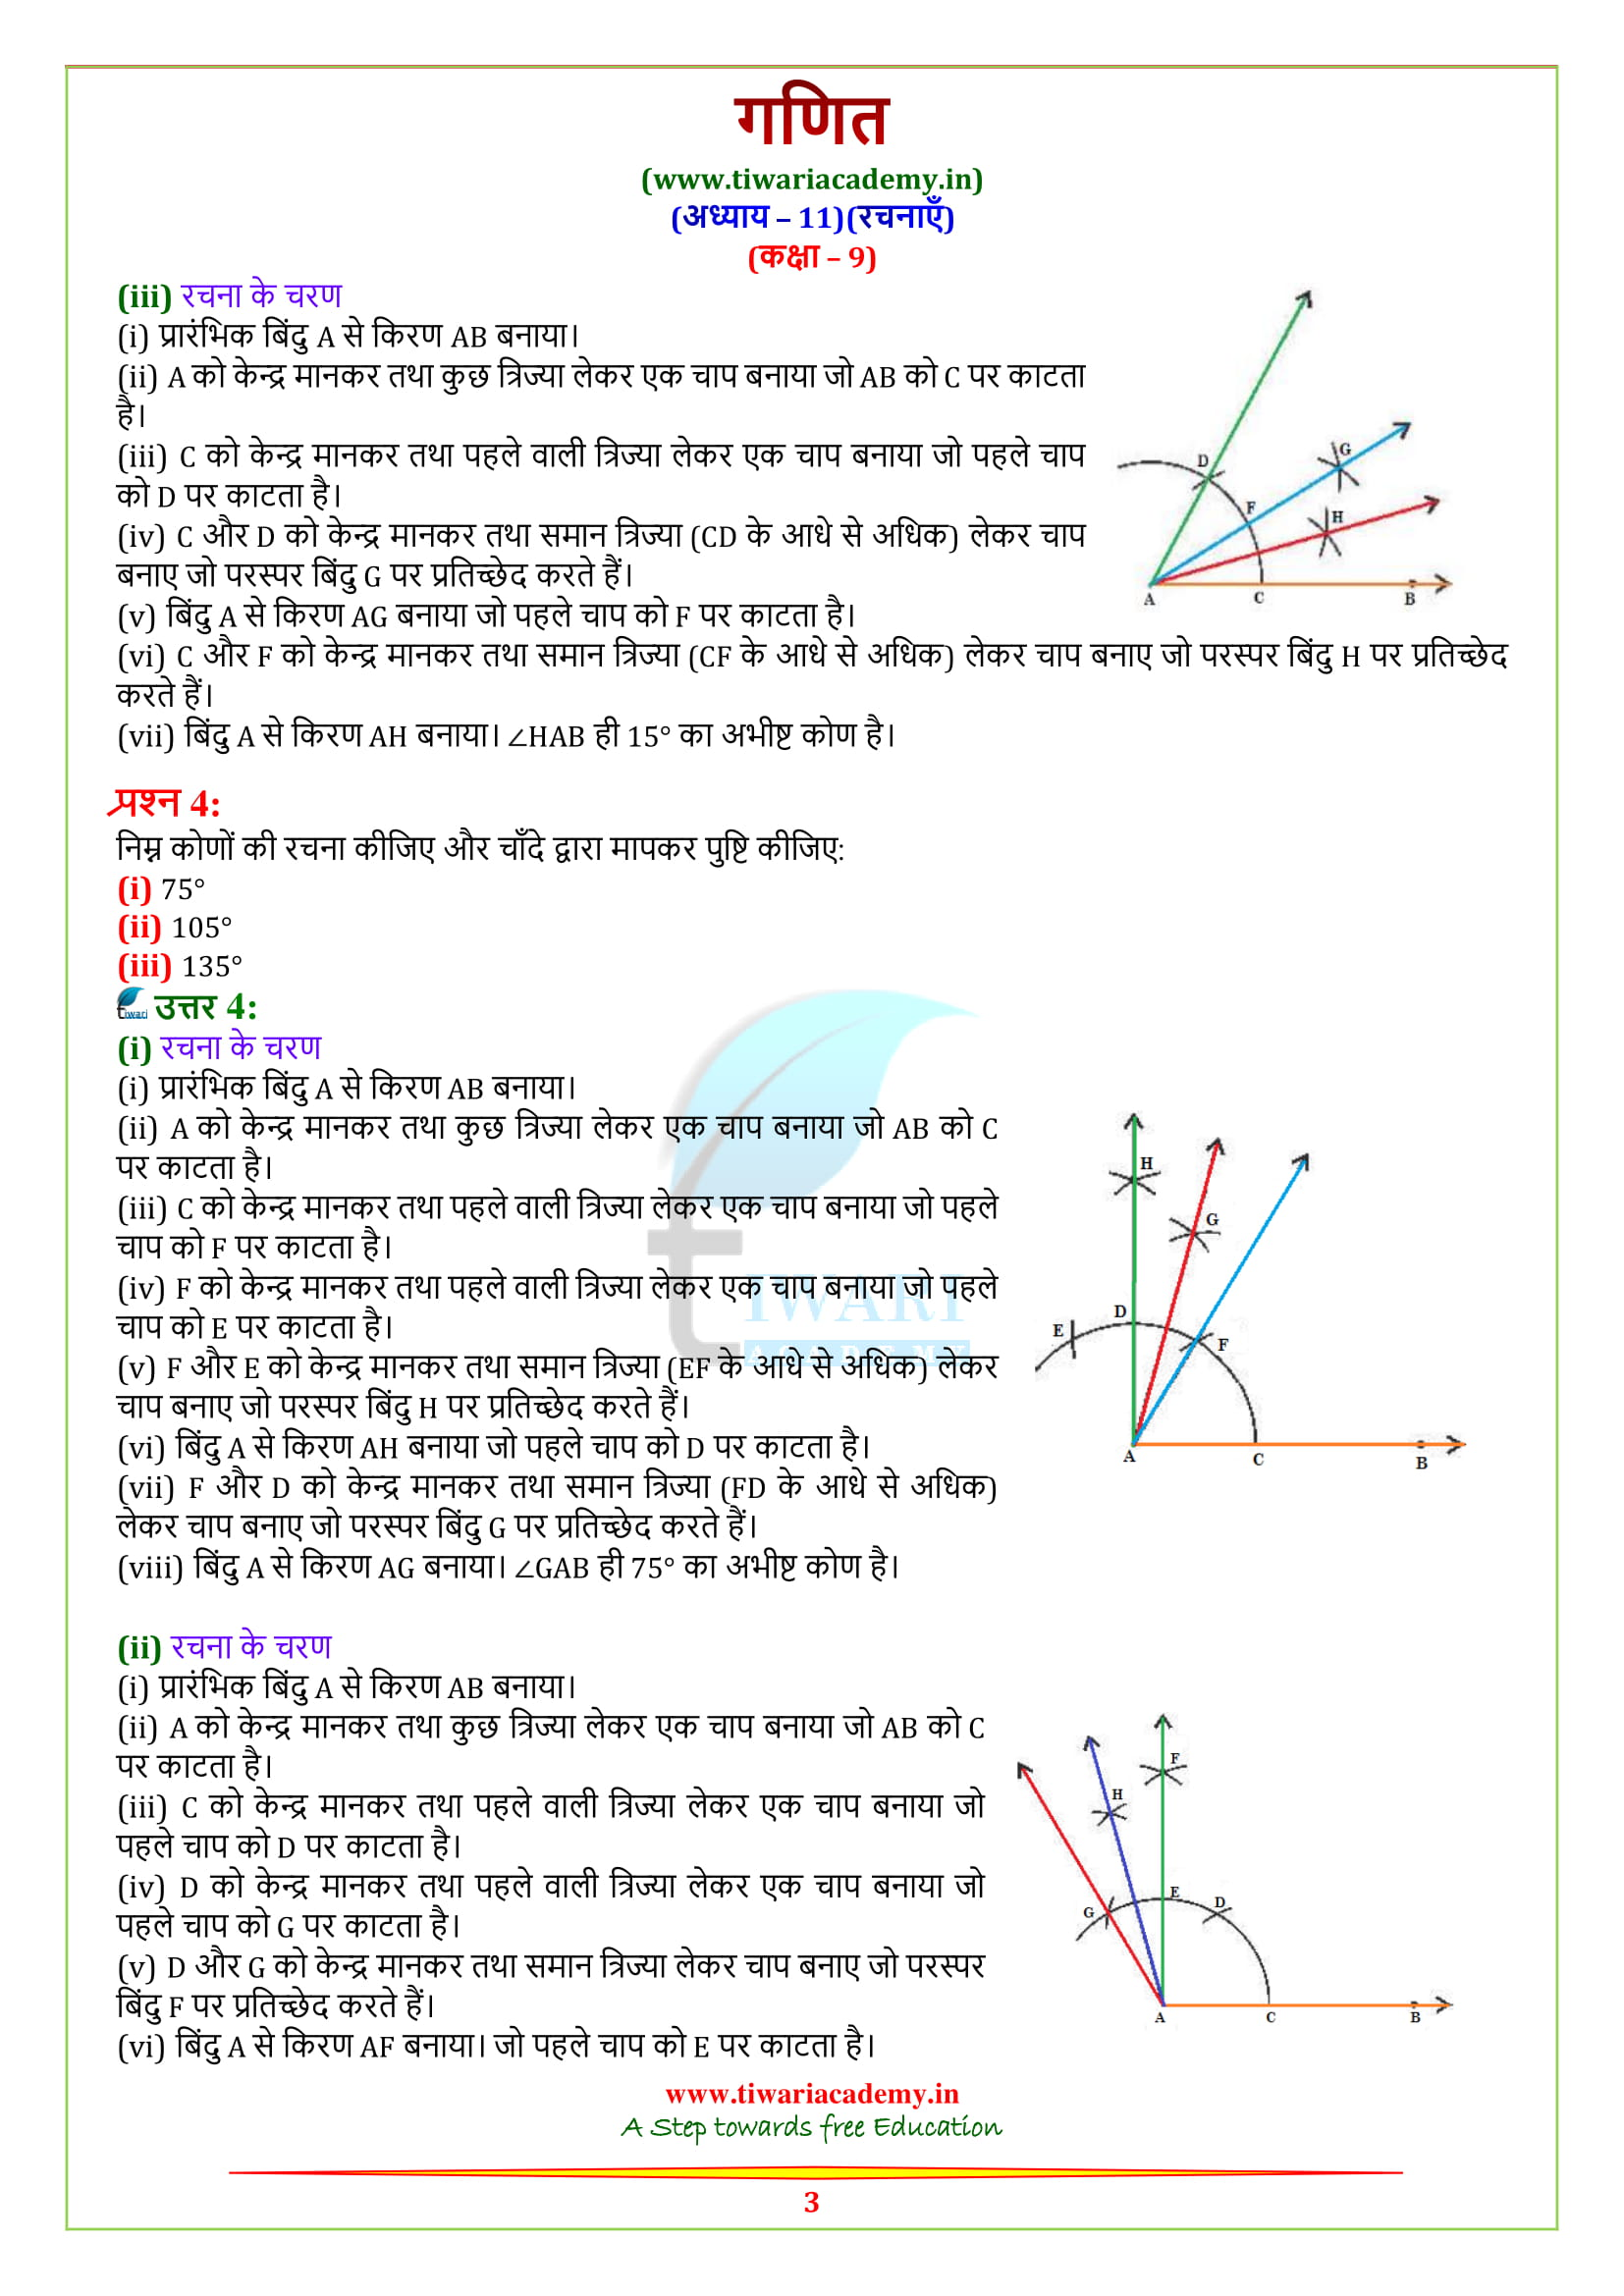 NCERT Solutions for class 9 Maths Exercise 11.1 for mp, up board free guide